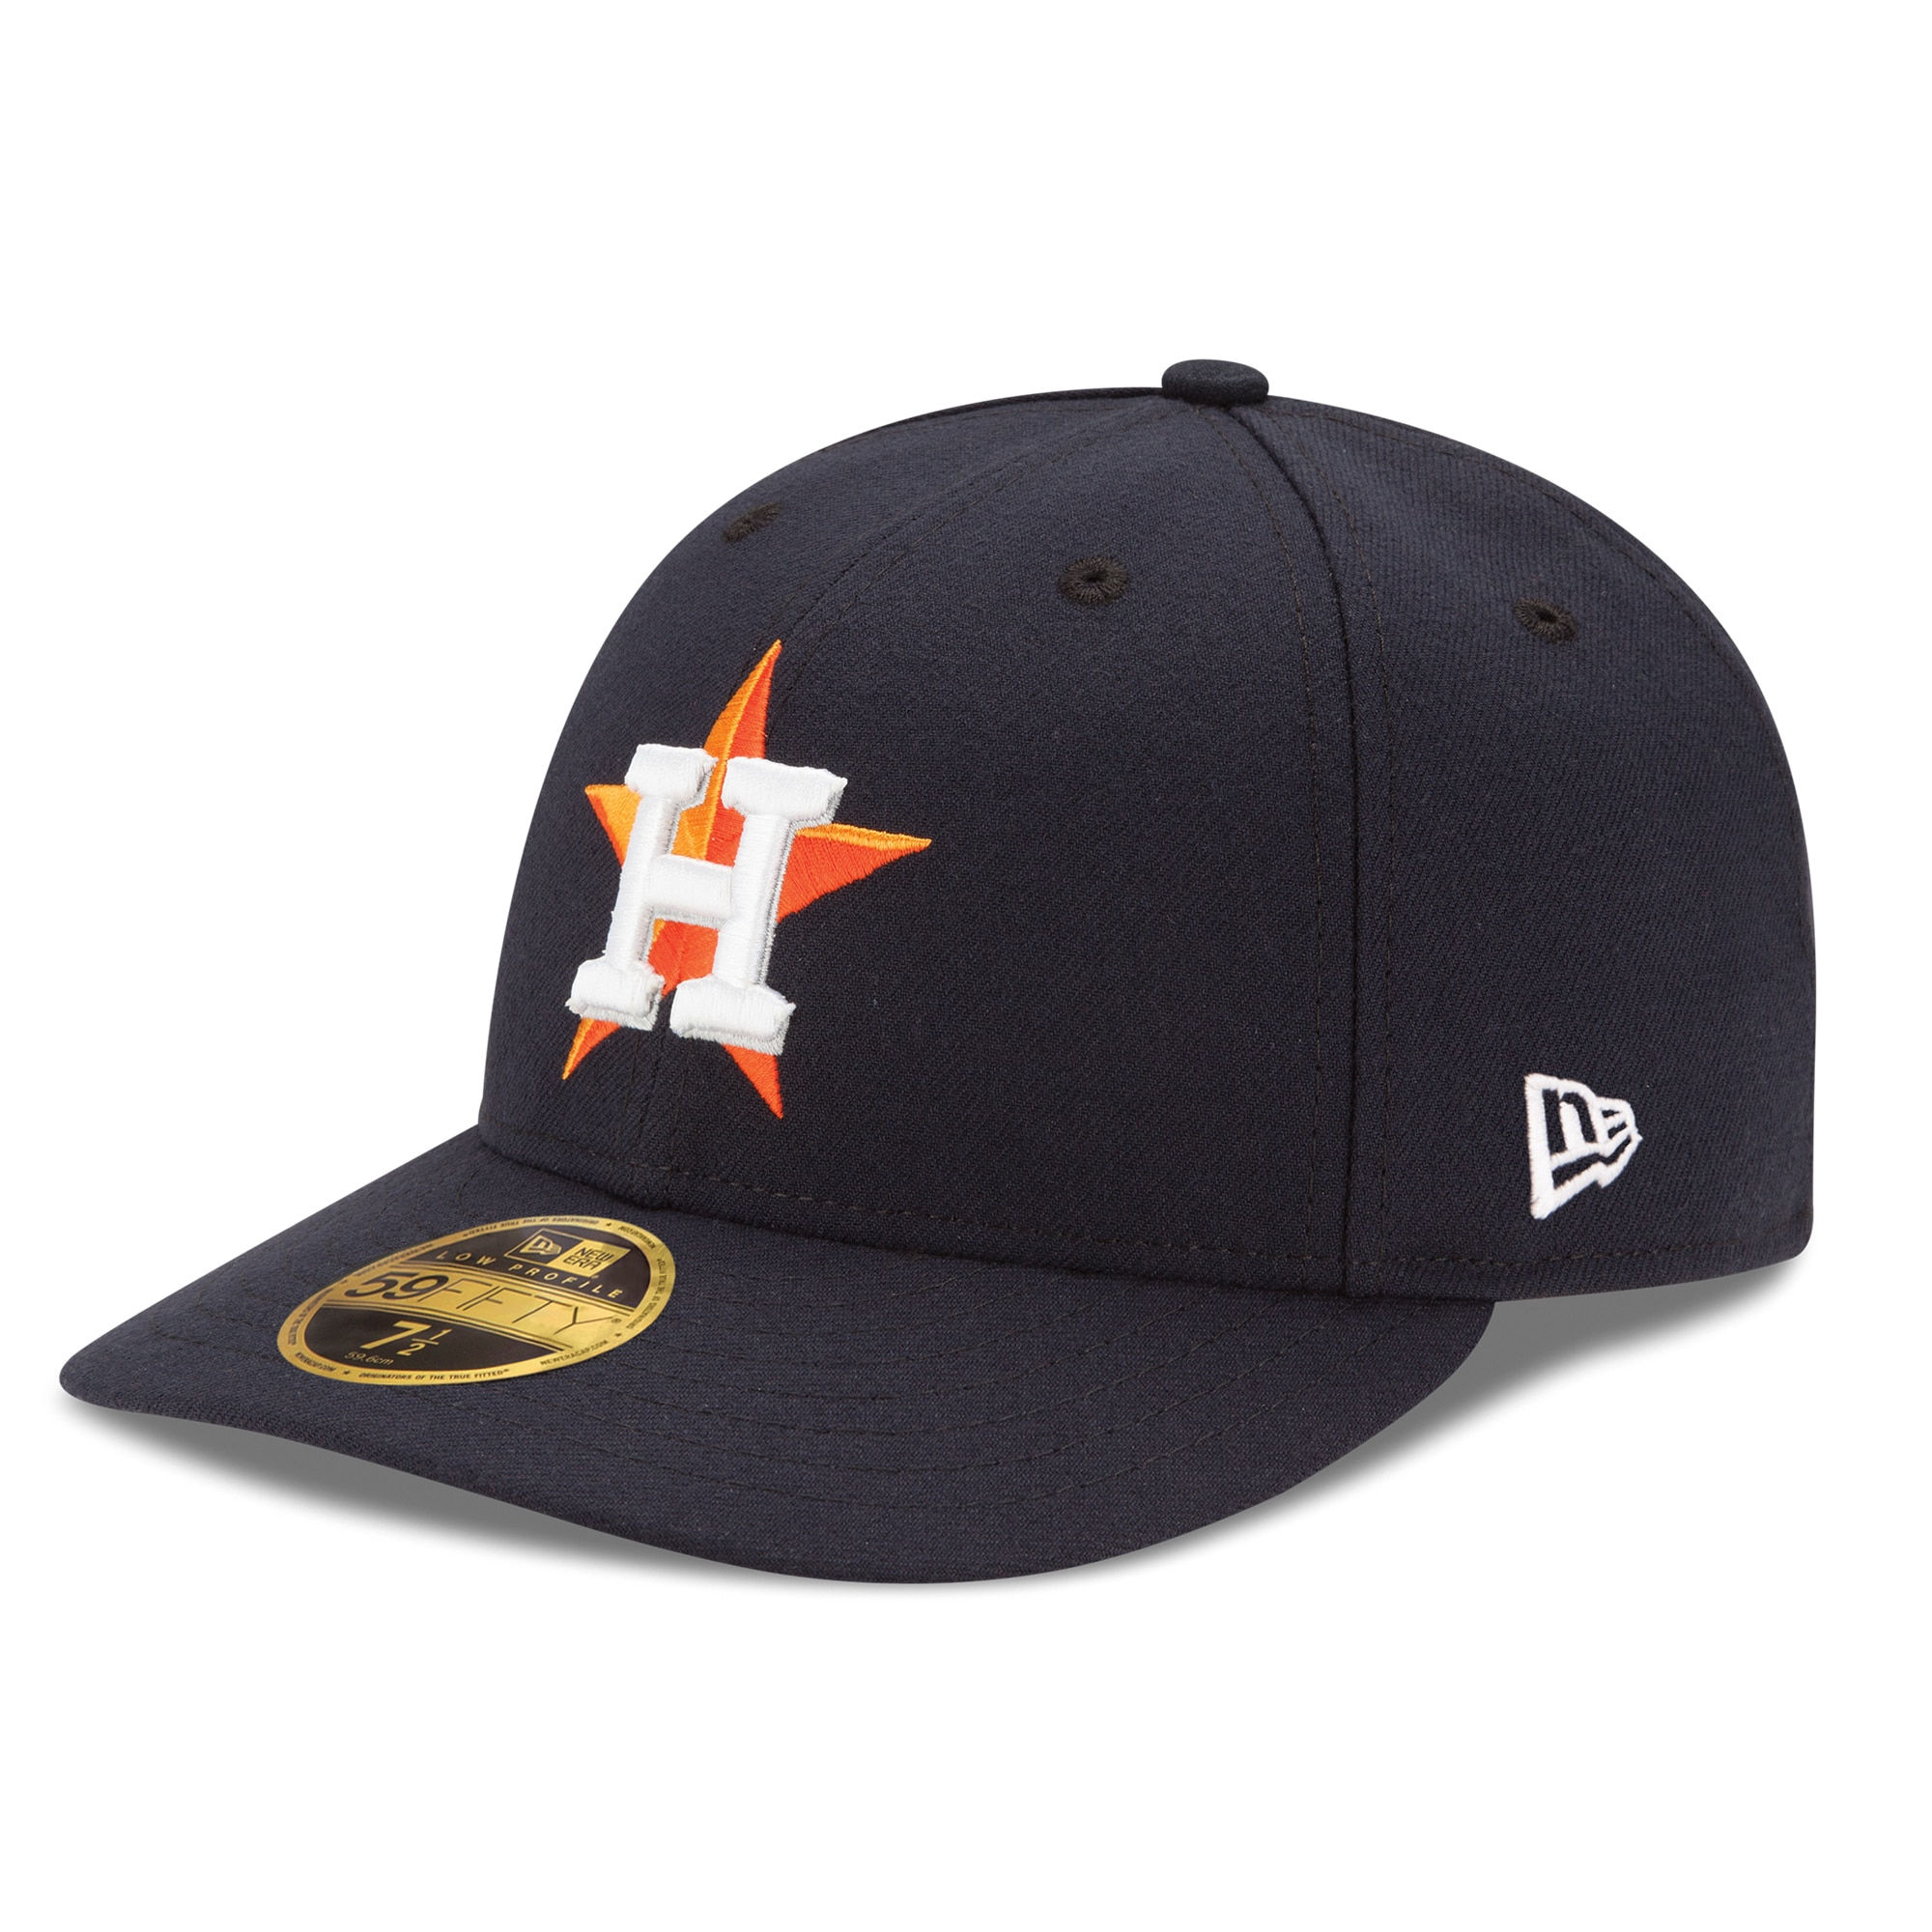 Houston Astros New Era Home Authentic Collection On-Field Low Profile 59FIFTY Fitted Hat - Navy